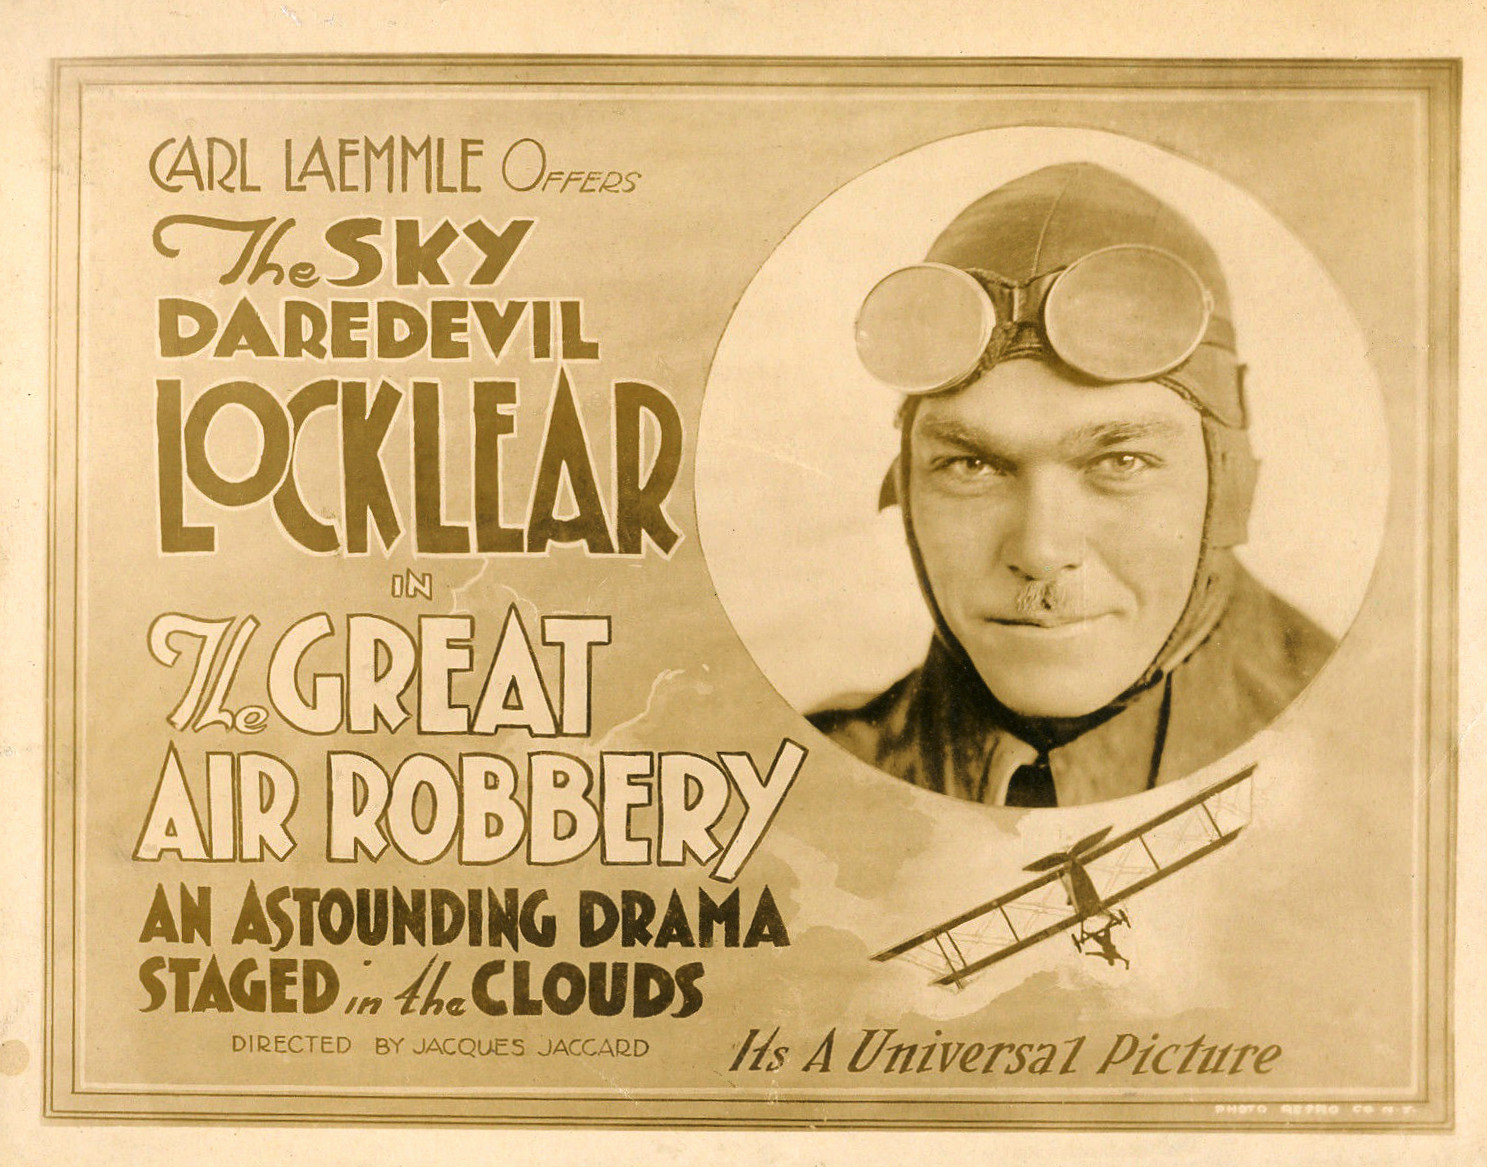 Great_Air_Robbery_lobby_card